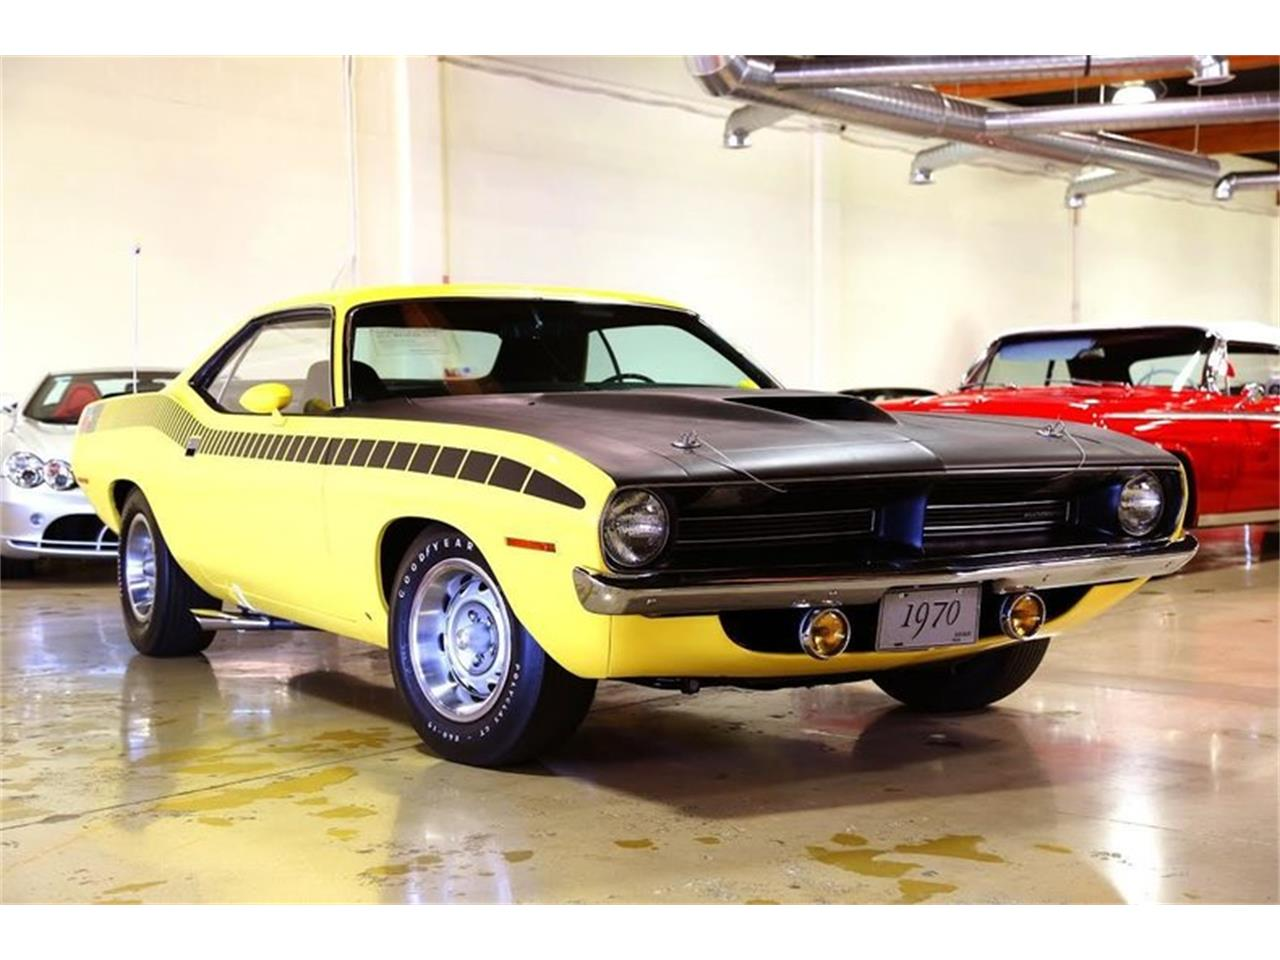 Large Picture of Classic '70 Cuda located in Chatsworth California - $109,900.00 - MBSV